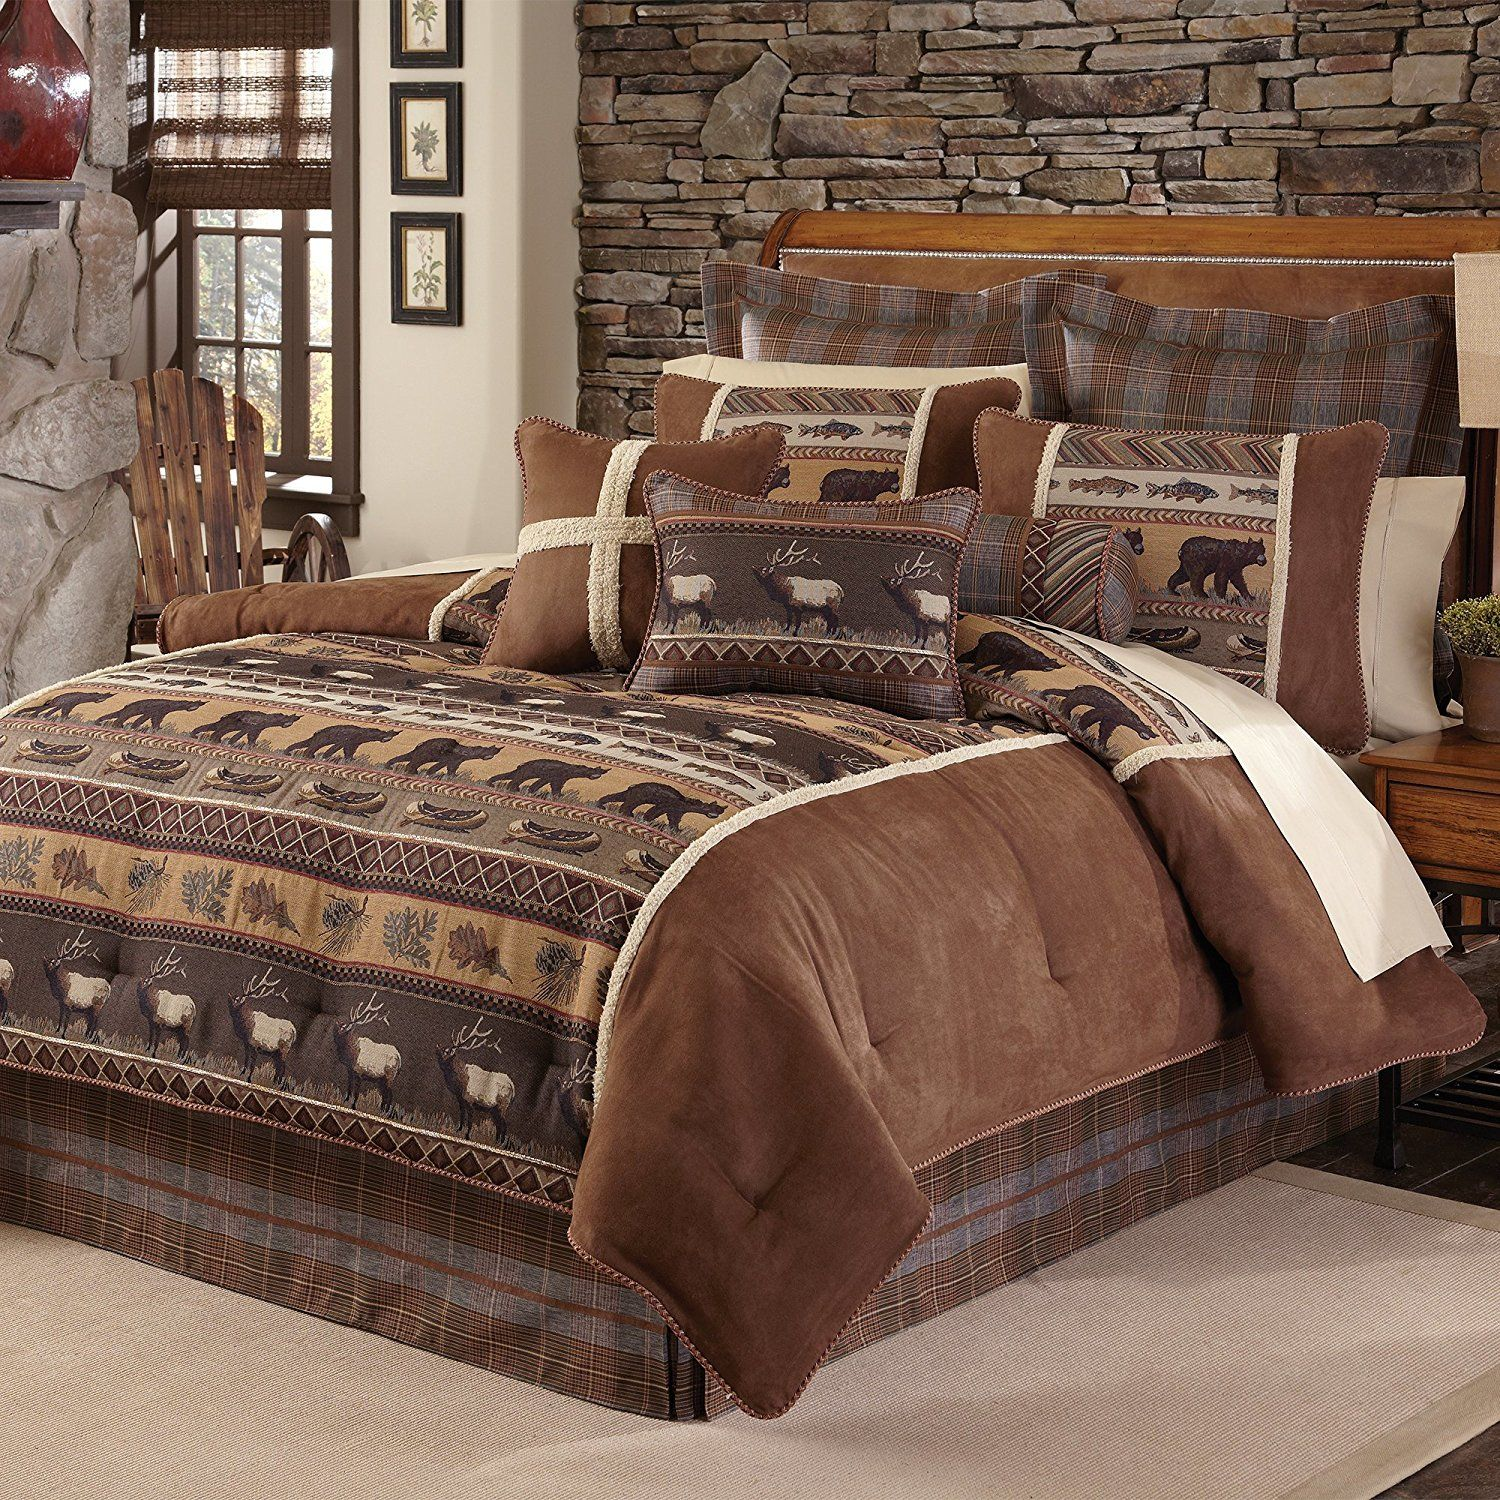 4 Piece Brown Cabin Themed Comforter King Cal King Set Lodge Bedding Bears Comforter Sets Bedroom Comforter Sets Comfortable Bedroom